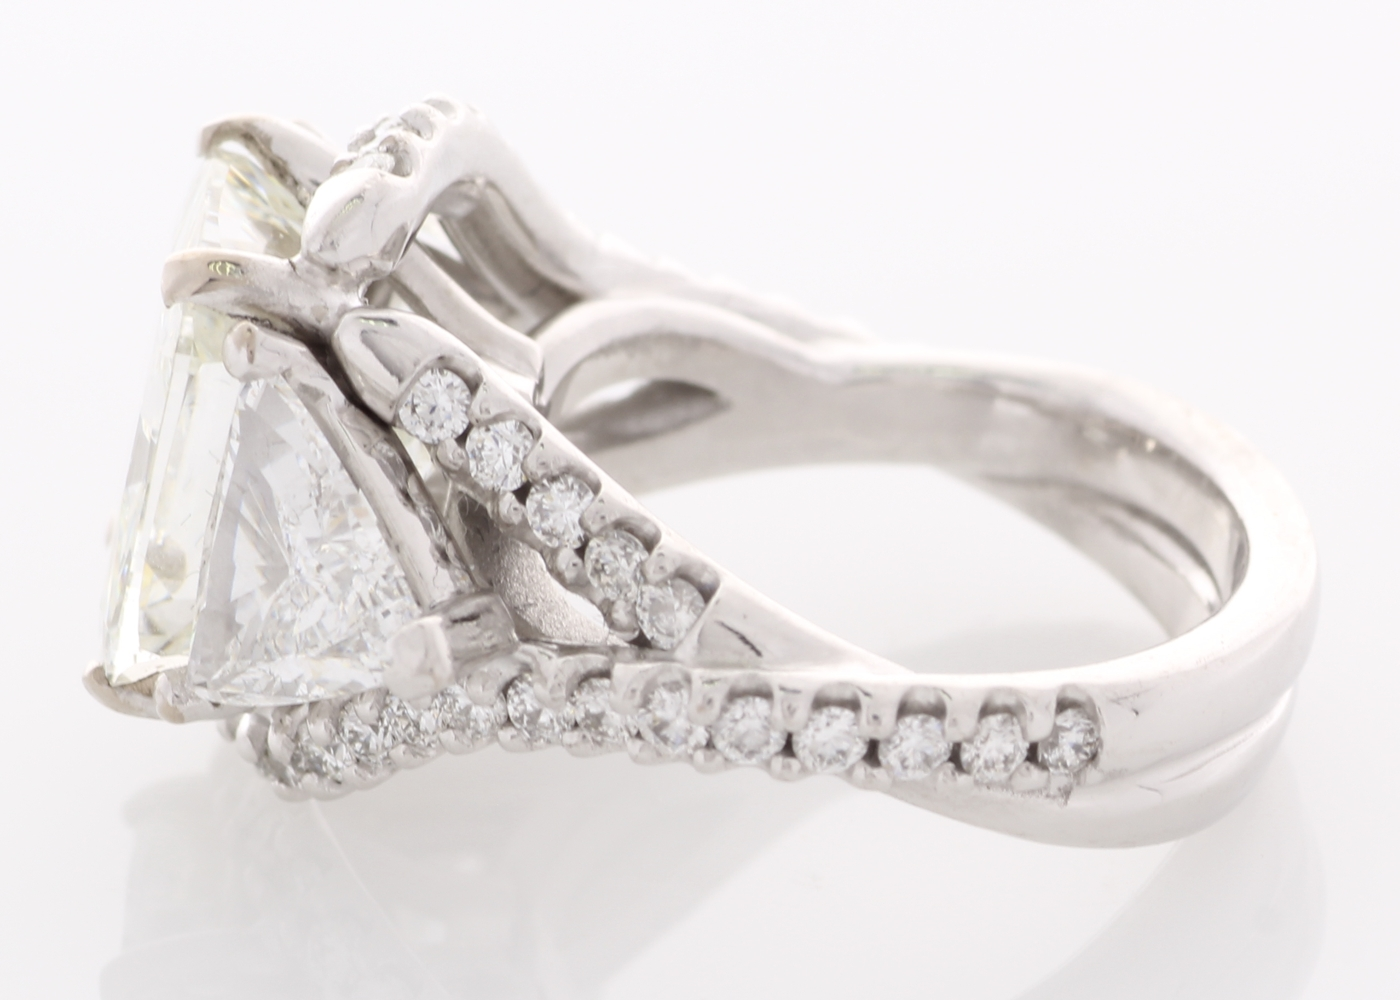 Lot 51 - 18ct White Gold Three Stone With Halo Setting Ring 4.51 Carats